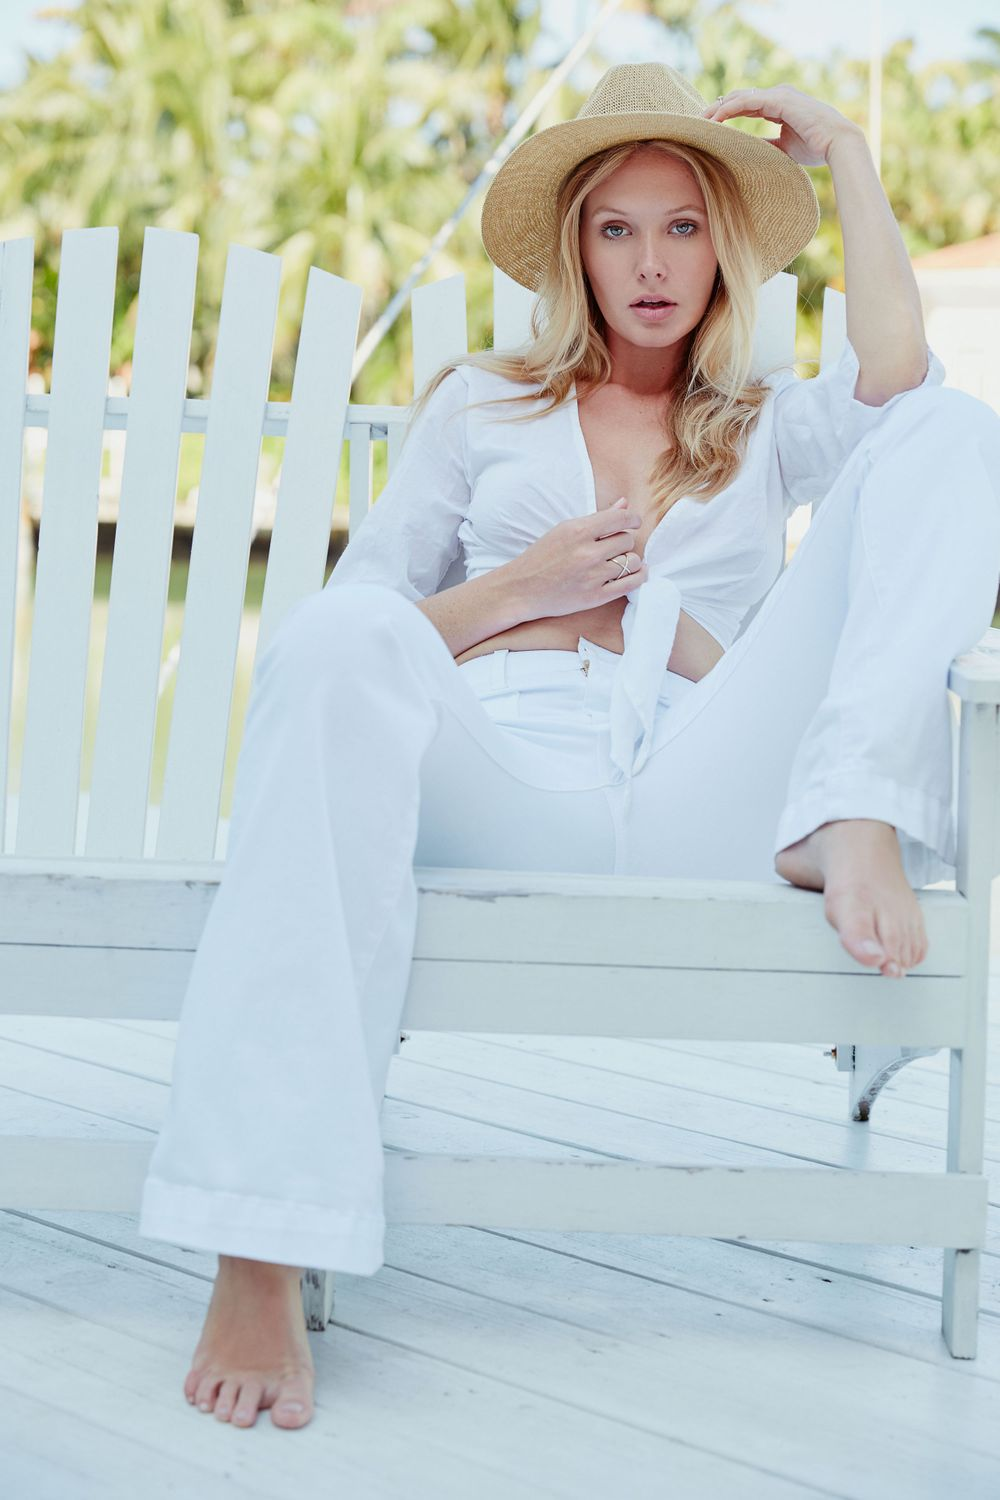 Model Carley Johnston wearing straw hat sitting in white rocking chair on a porch South Beach, Miami